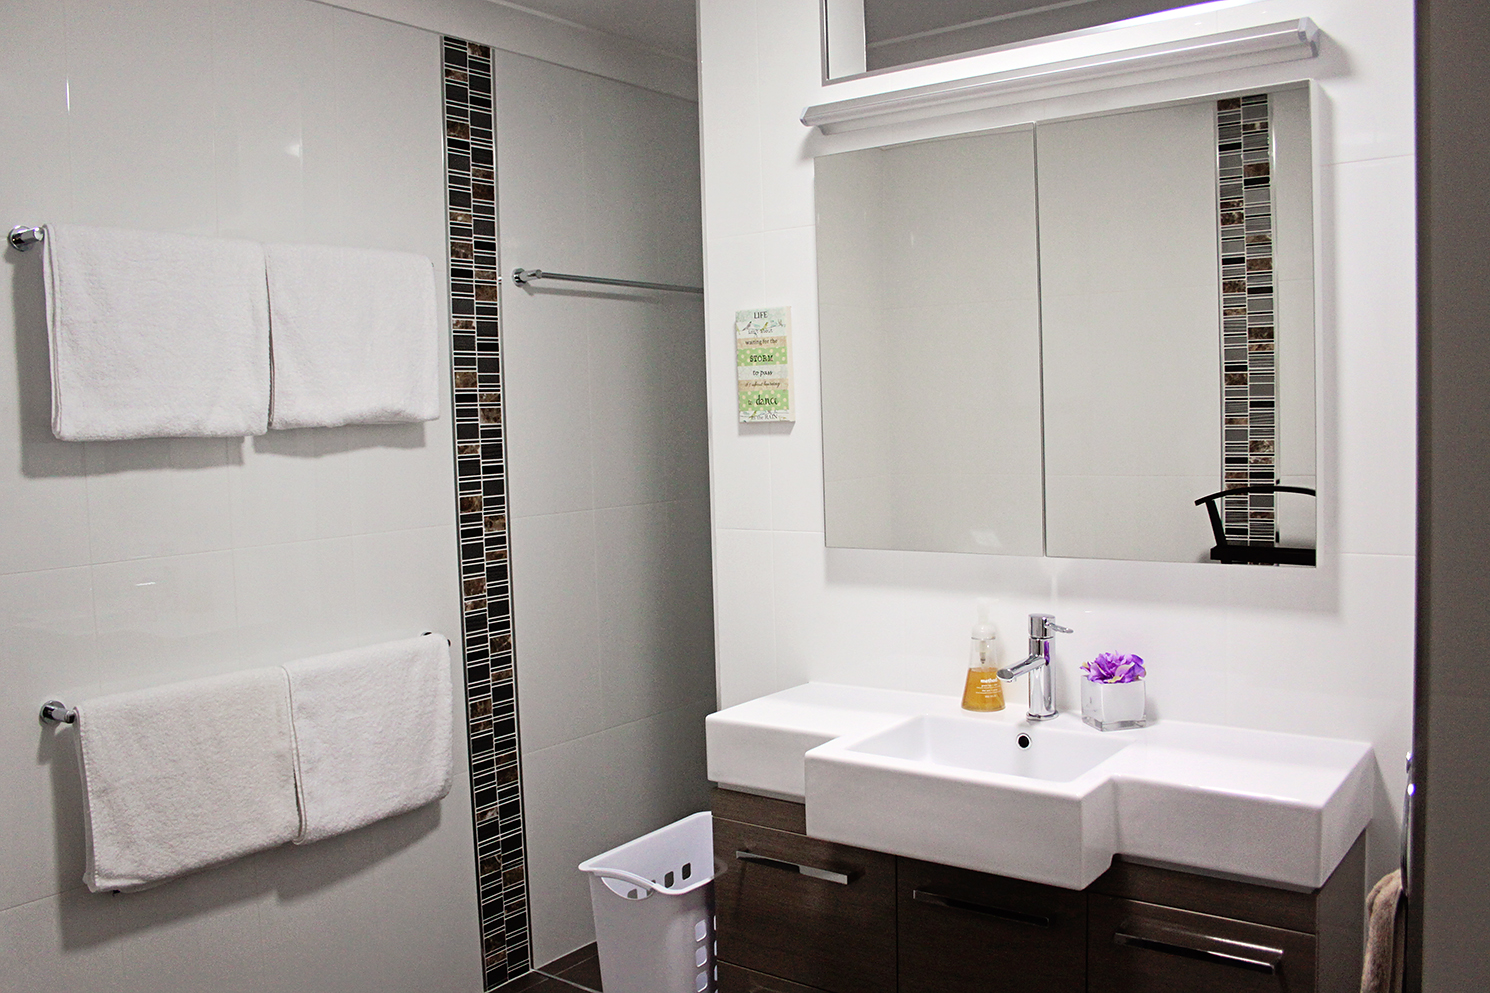 The adjoining bathroom is stunning. A lovely area to prepare for your massage and get dressed again afterwards.